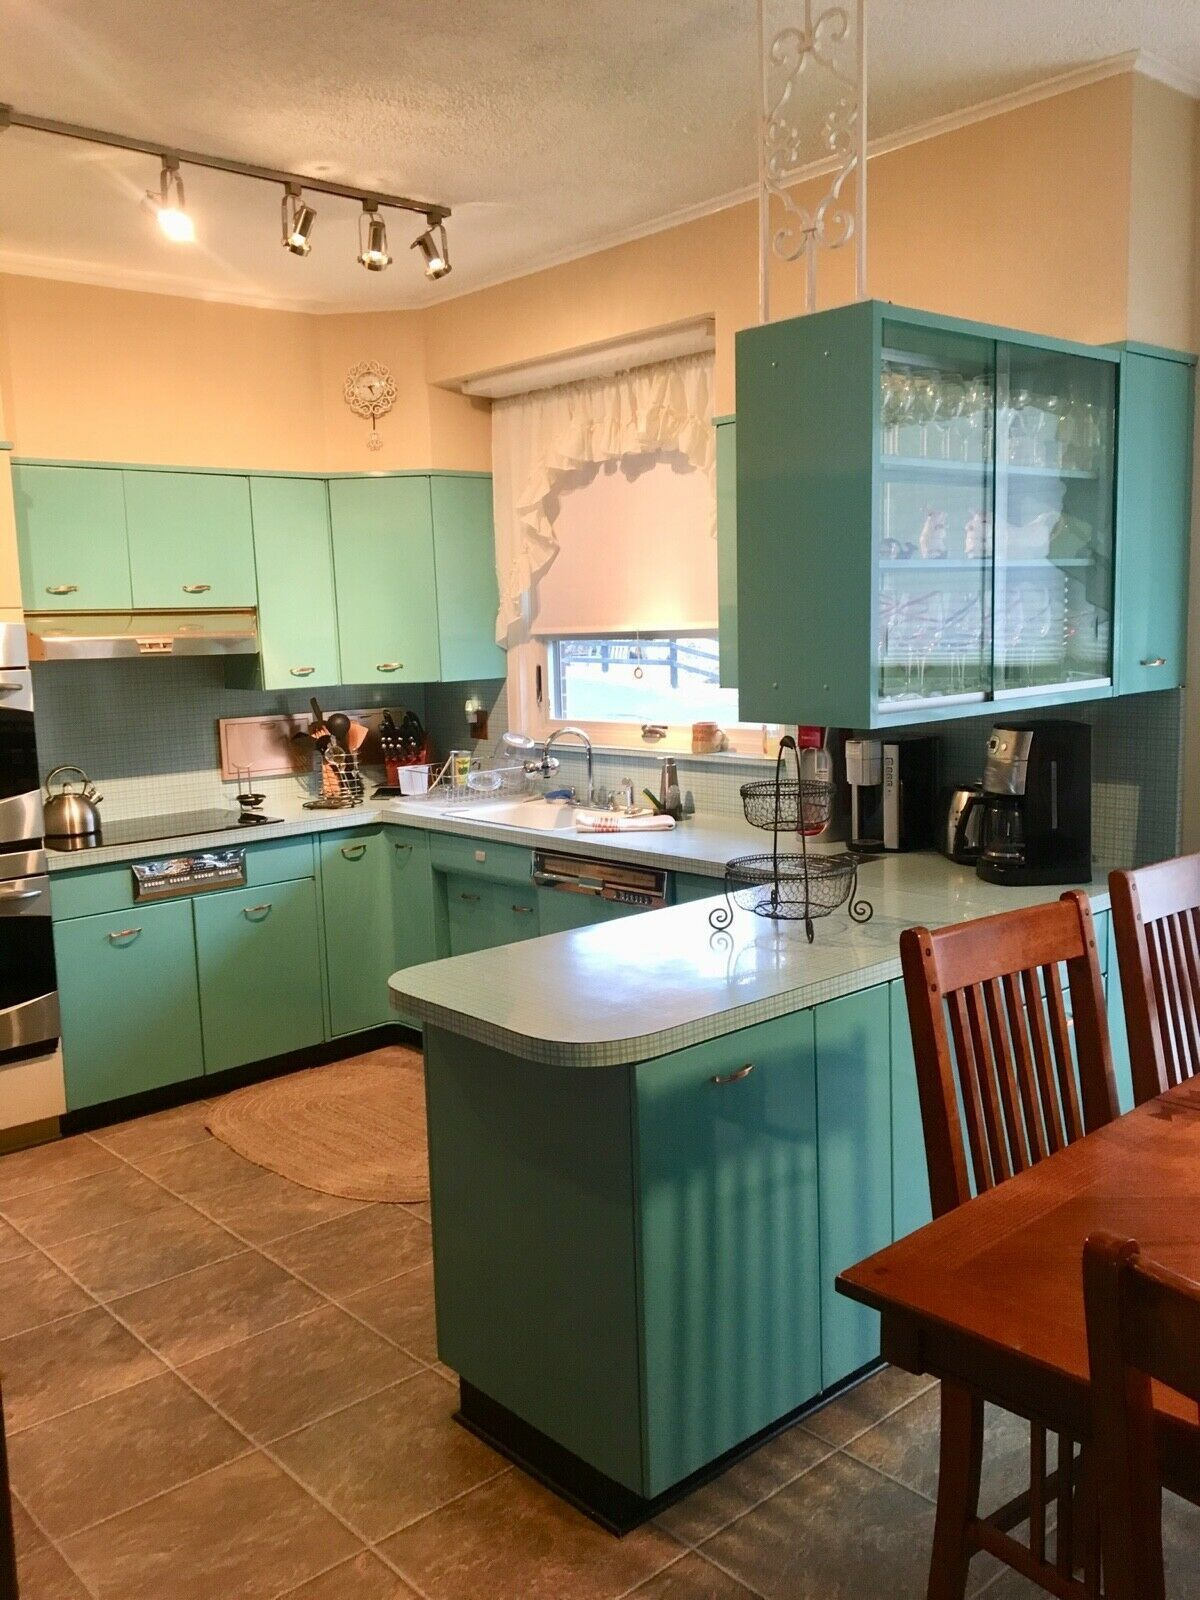 Buy Kitchen Cabinets Online On Overstock Our Best Offers For Kitchen Furniture Buy Cabin In 2020 Online Kitchen Cabinets Buy Kitchen Cabinets Metal Kitchen Cabinets